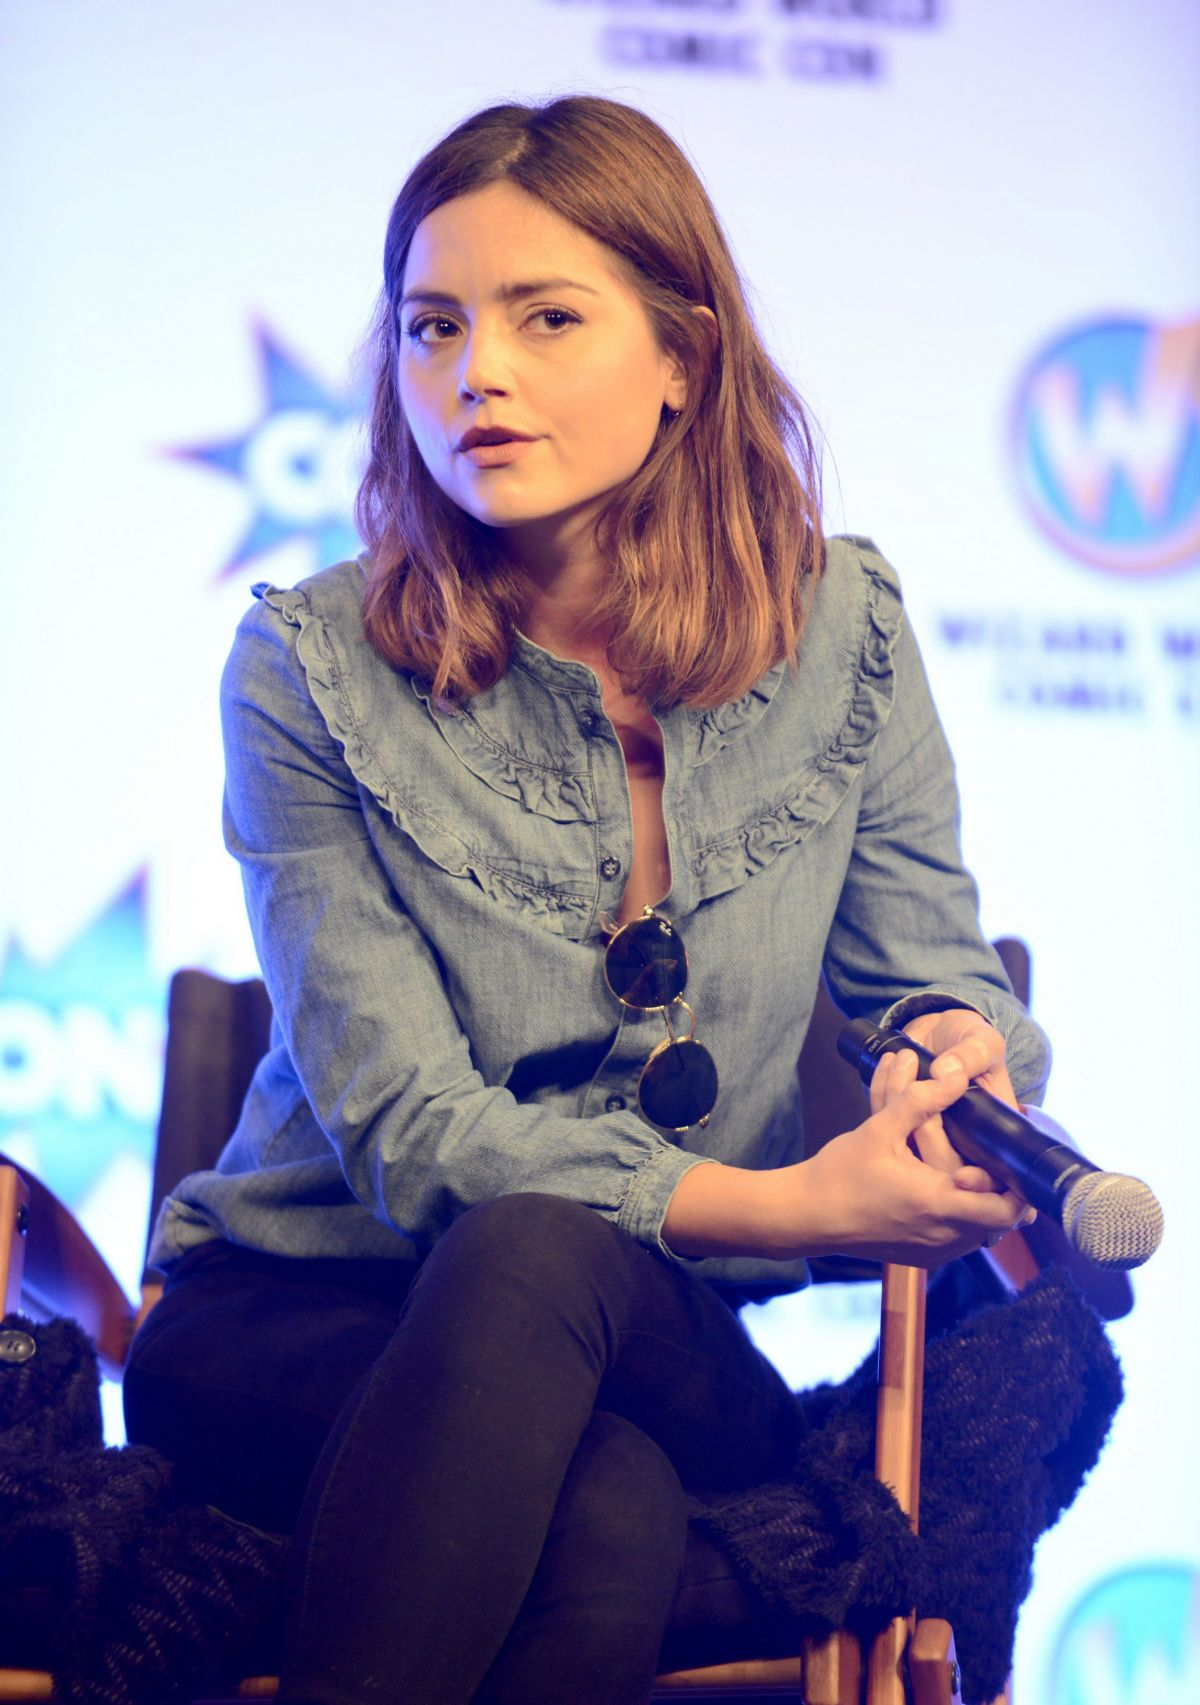 Jenna Coleman At Wizard World Comic Con In New Orleans